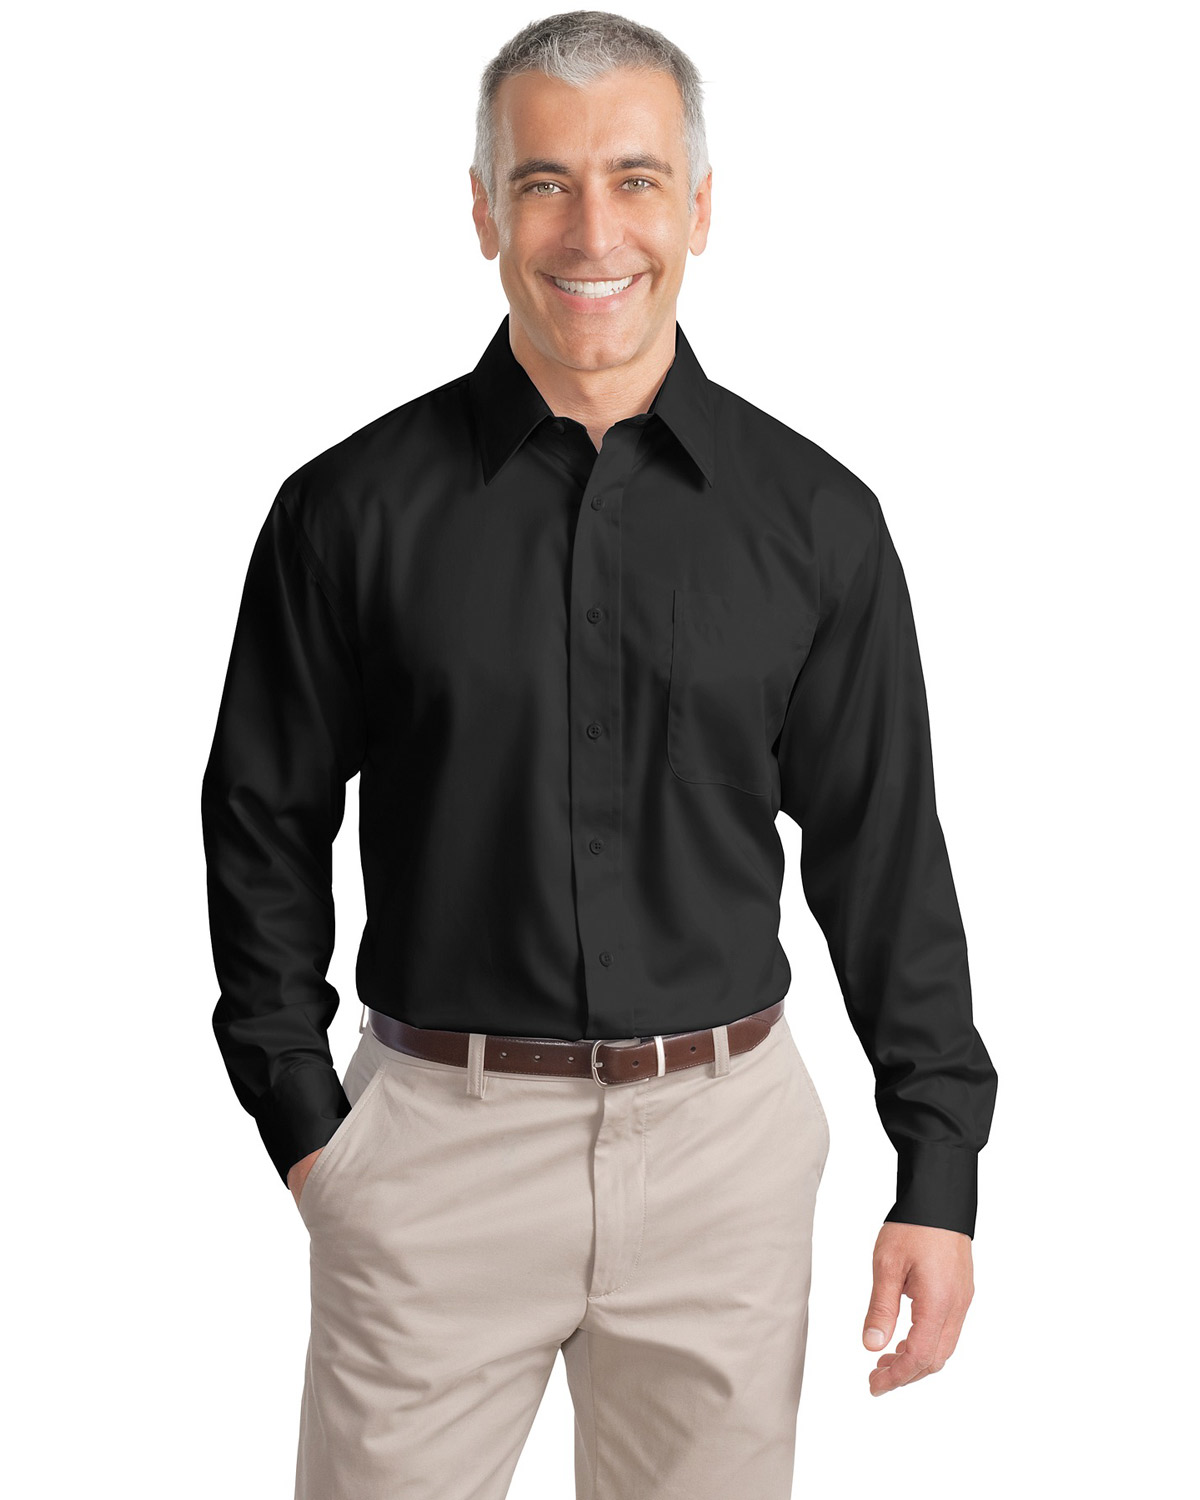 Men 39 s big and tall shirts at wholesale price great for Big and tall shirts cheap